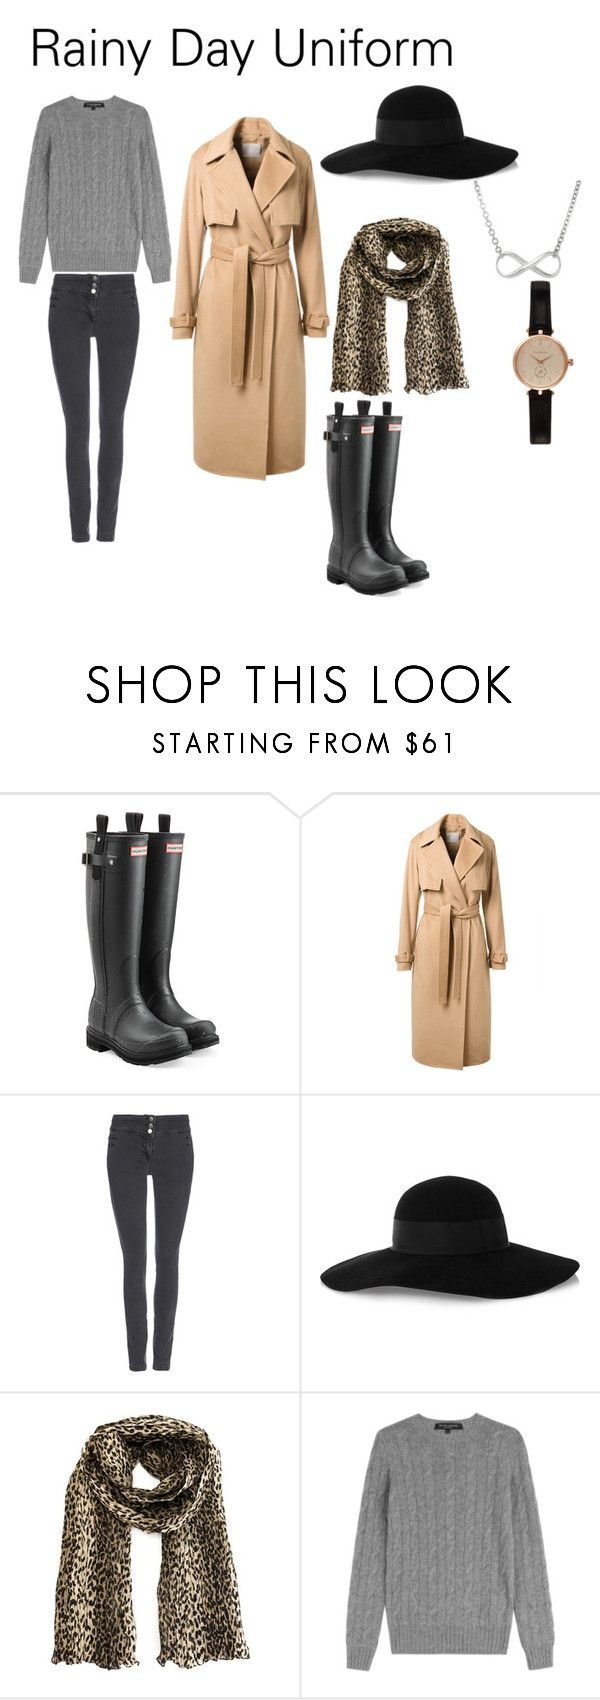 Rainy Day Uniform by ve-safarova on Polyvore featuring Ralph Lauren Black Label, Jason Wu, Wallis, Hunter, Barbour, Yves Saint Laurent and Eugenia Kim